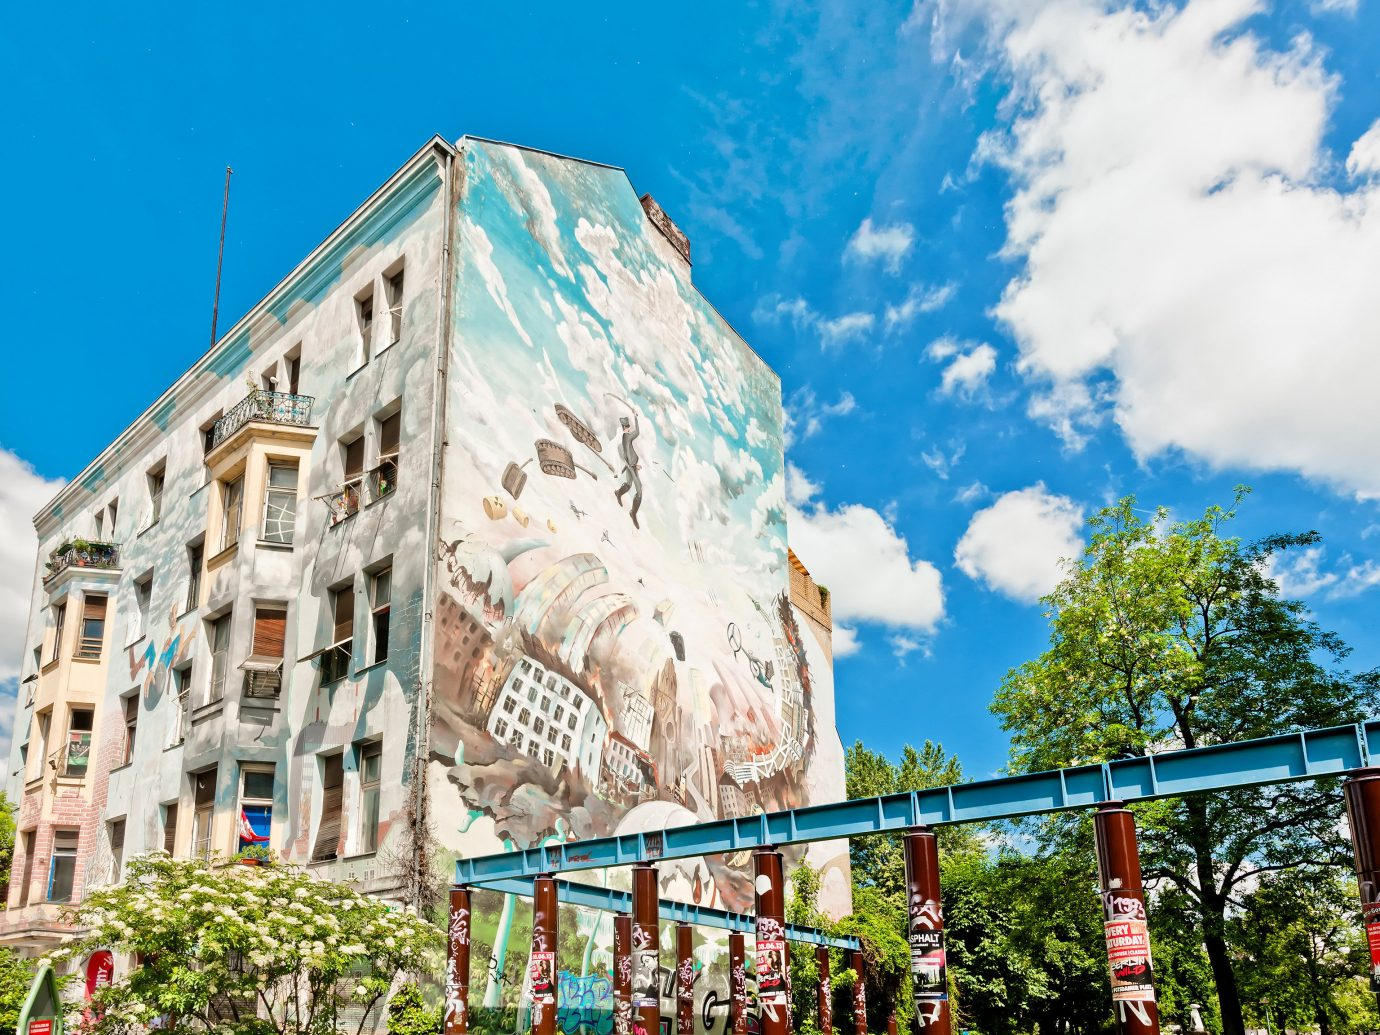 europe Trip Ideas sky outdoor landmark neighbourhood urban area Town daytime residential area metropolitan area mural tourism building tree City tourist attraction facade real estate metropolis house leisure mountain condominium mixed use